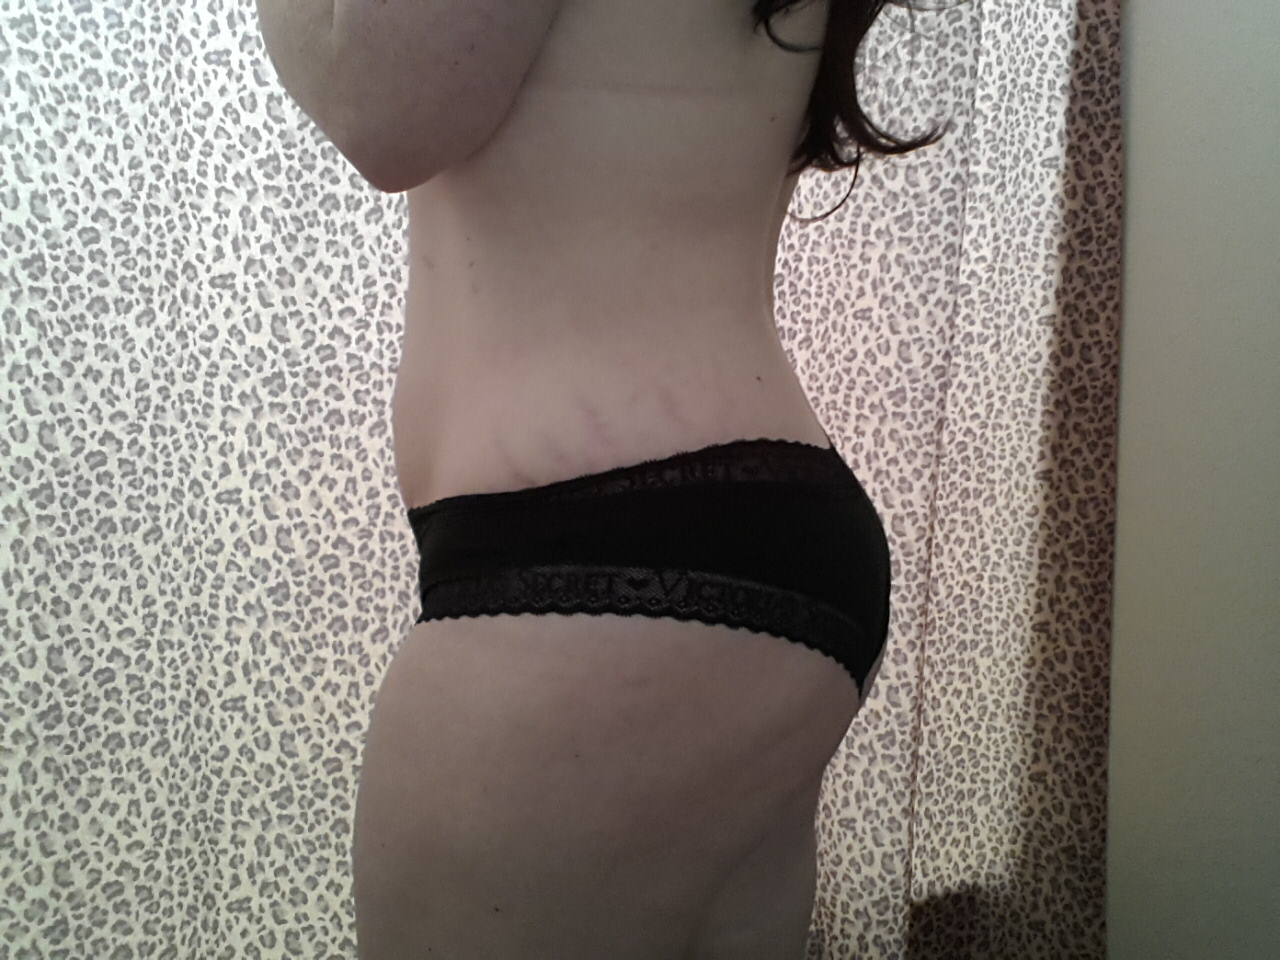 side view-stretch mark on hip, and butt/thigh dimples